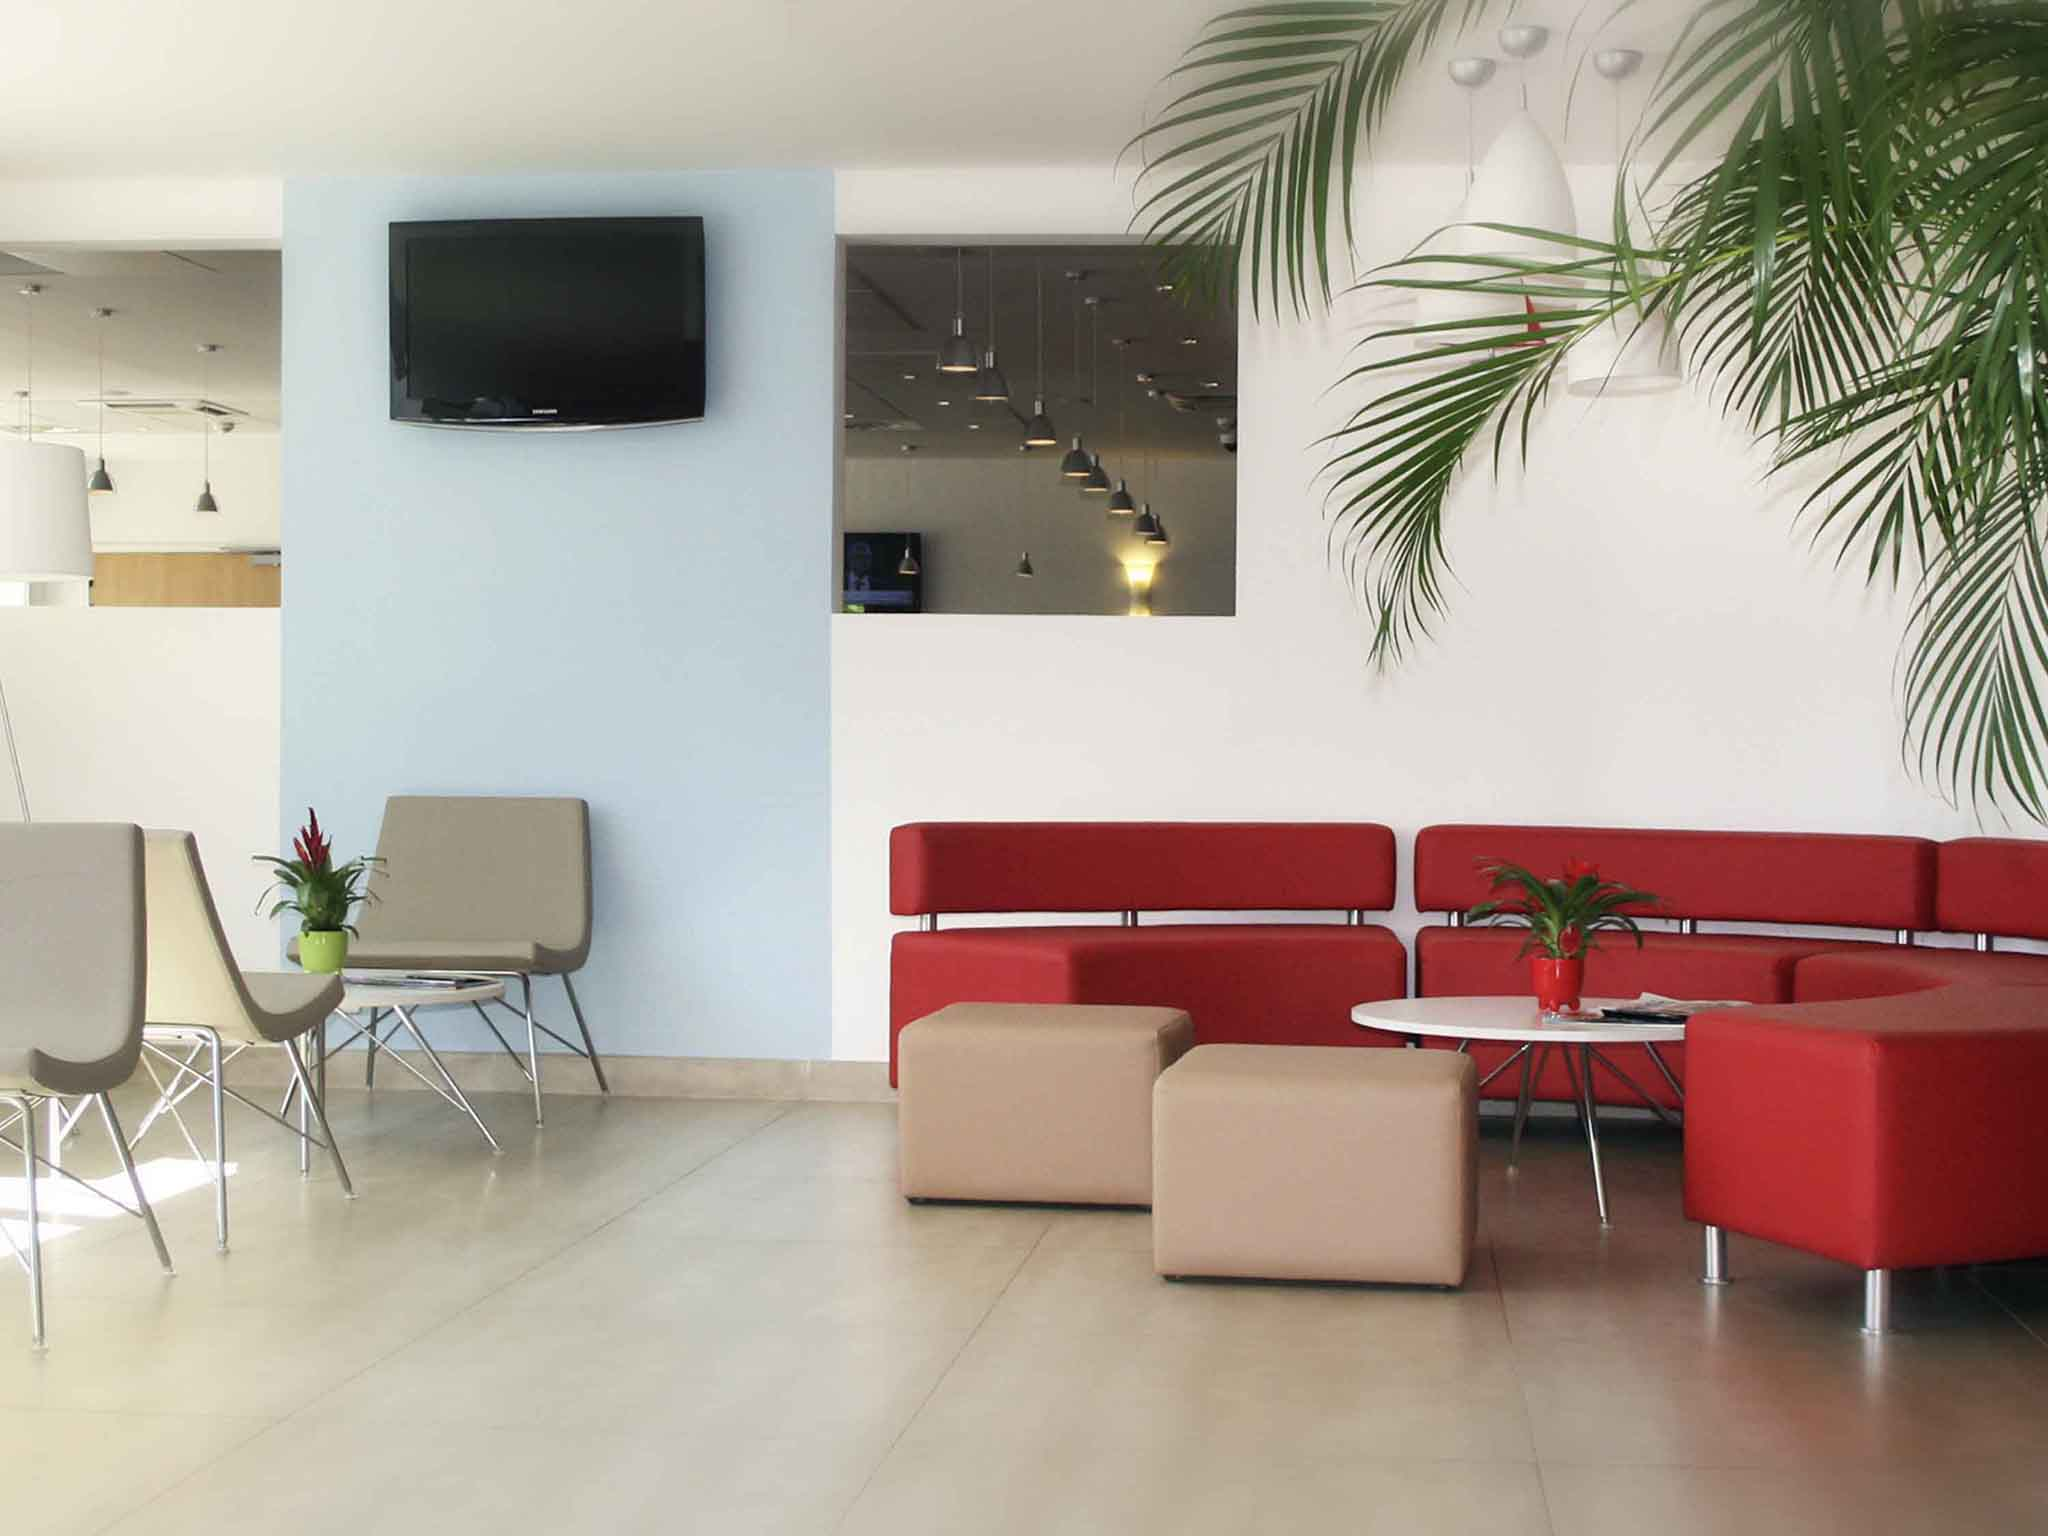 Hotel in istres ibis istres trigance for Hotel f1 salon de provence